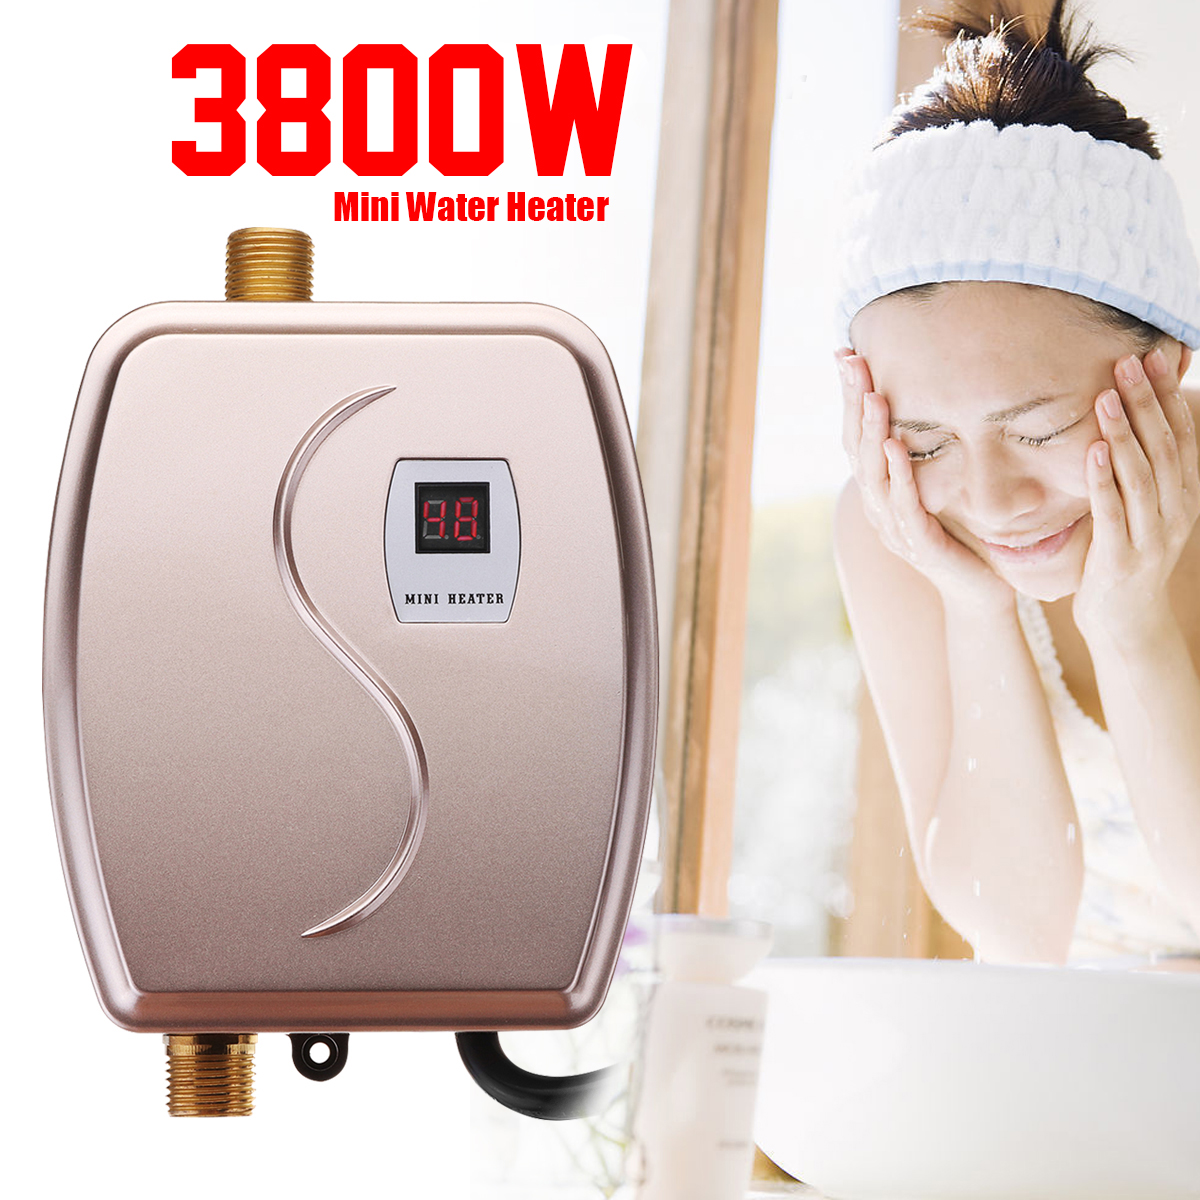 Hot Water Heater Faucet kitchen Heating 3800W Mini Tankless Instant Thermostat US/EU Plug Intelligent Energy Saving Waterproof